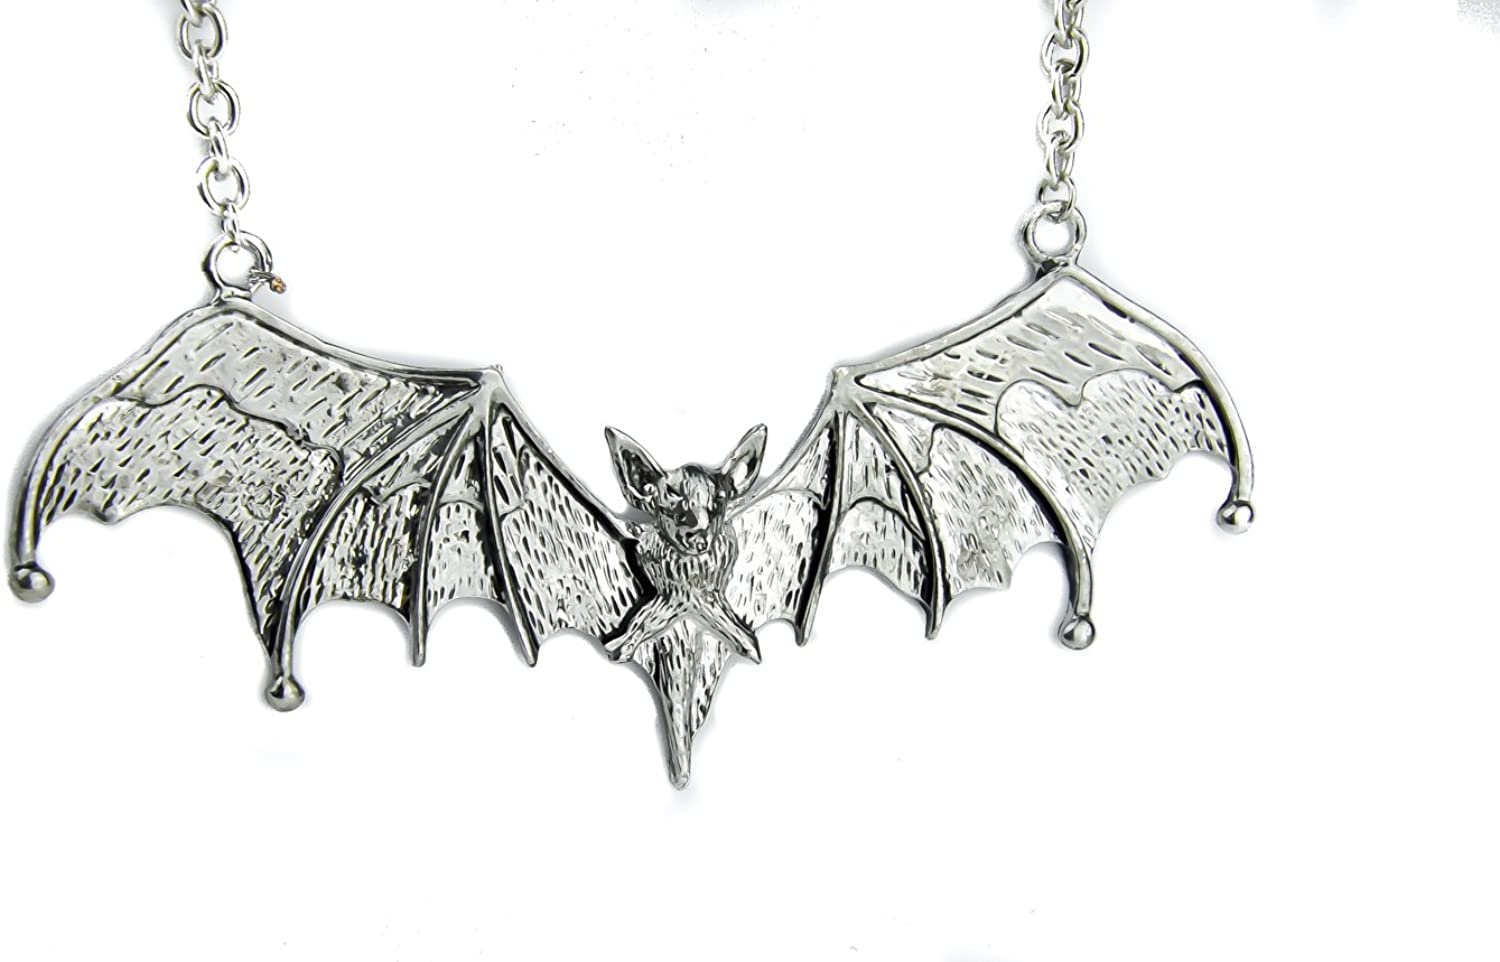 Bat Necklace Great For Halloween 2 Colors to Choose Pendant